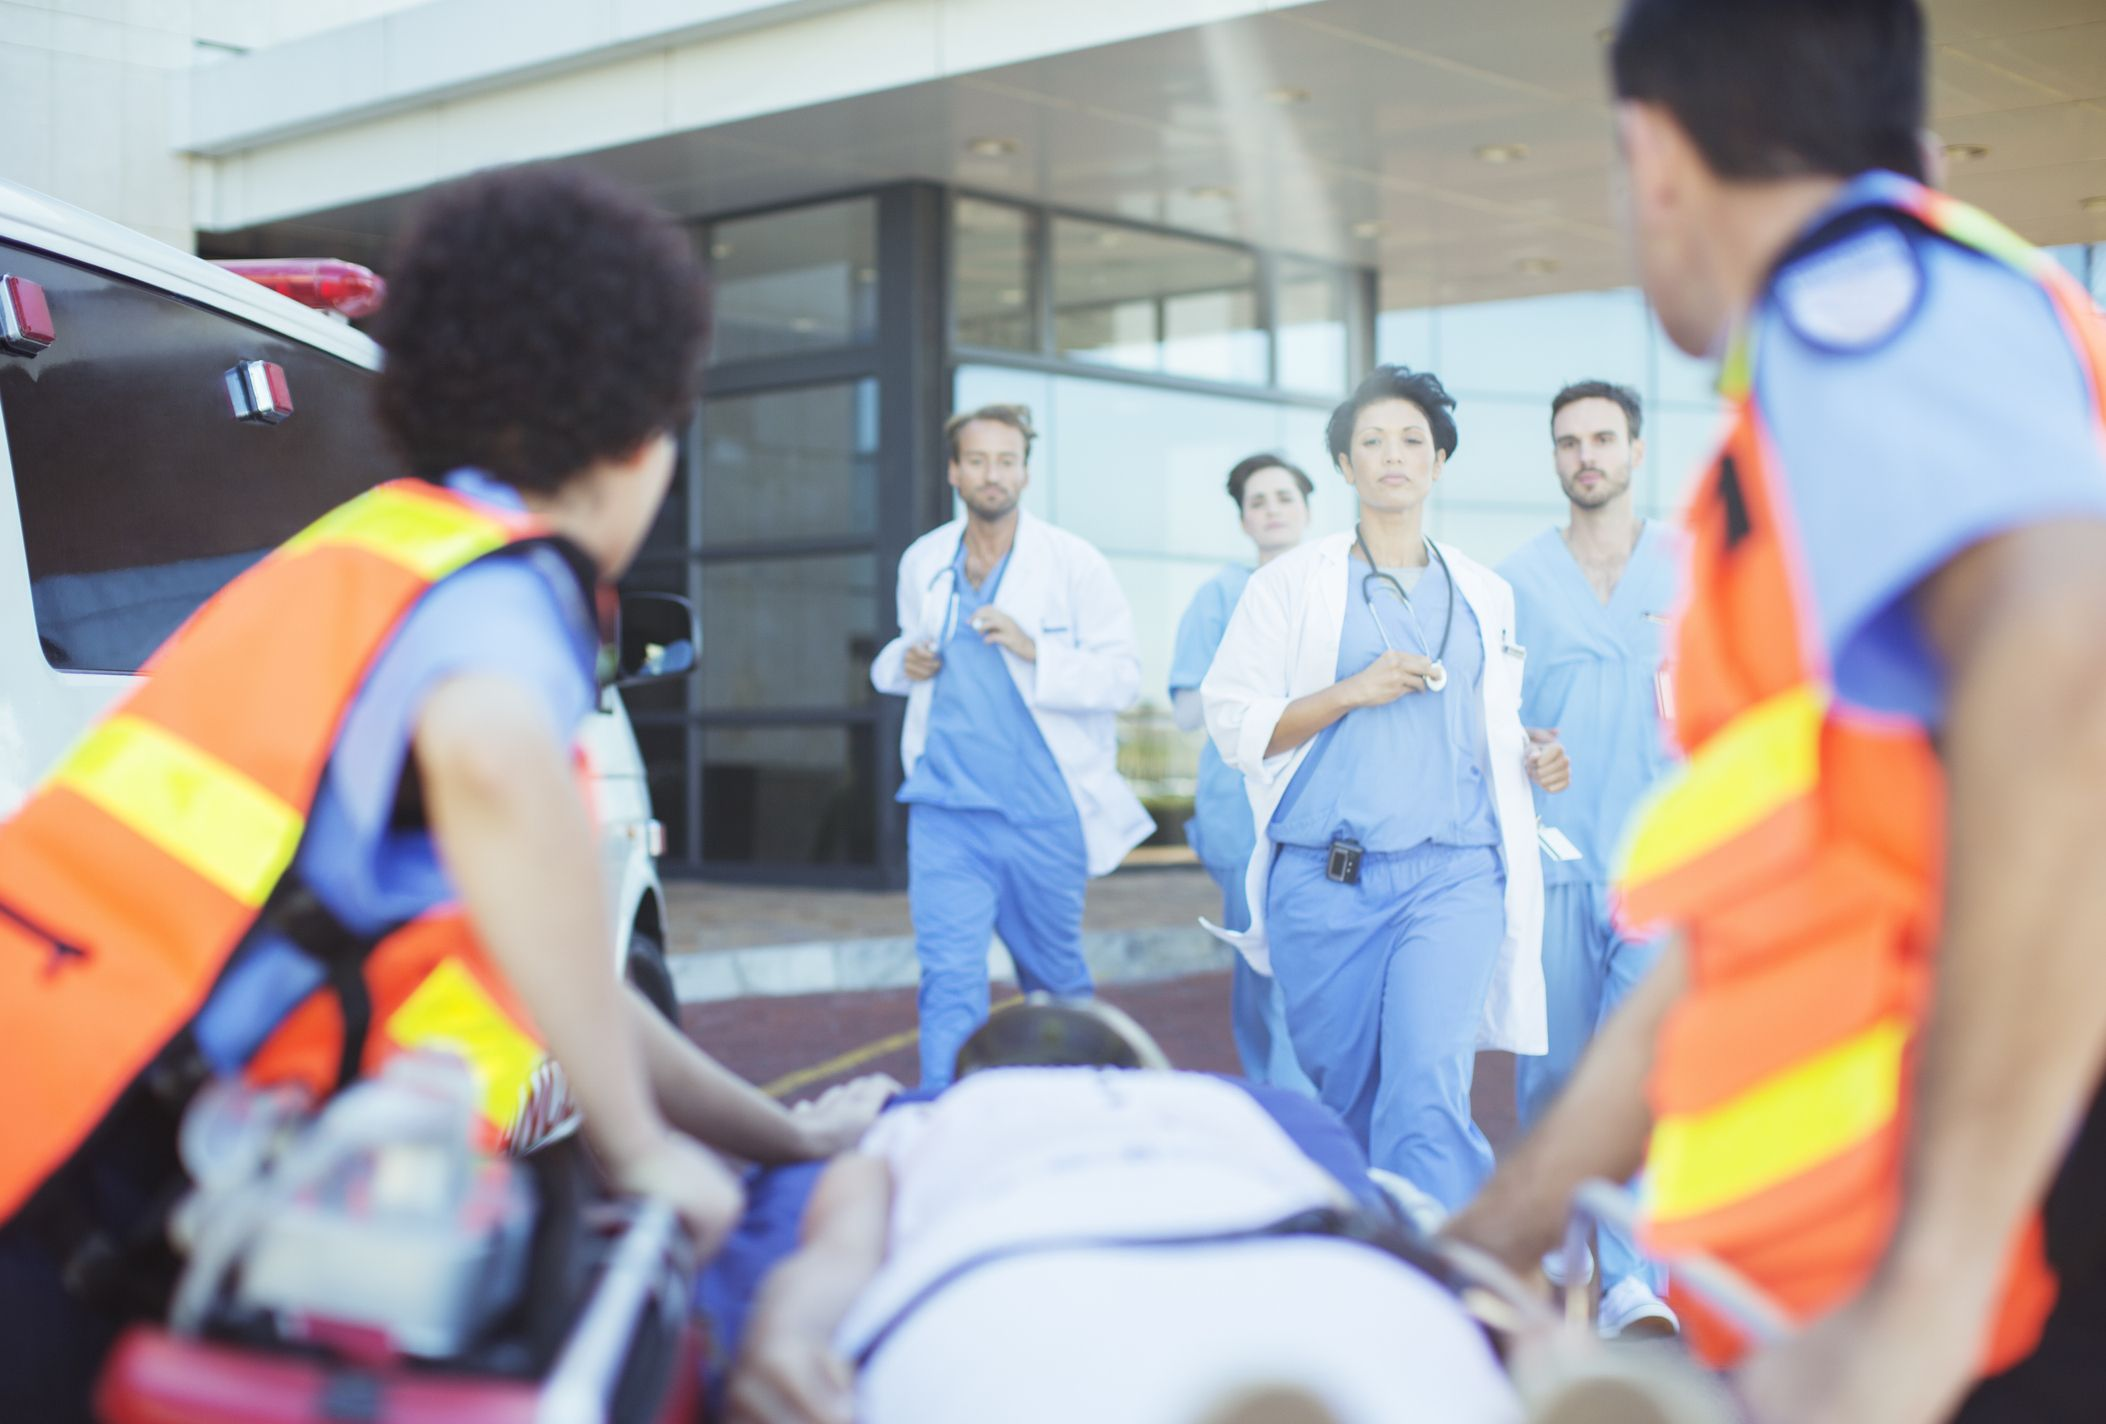 The Habit That Lowers Preventable Deaths, According to An EMS Worker